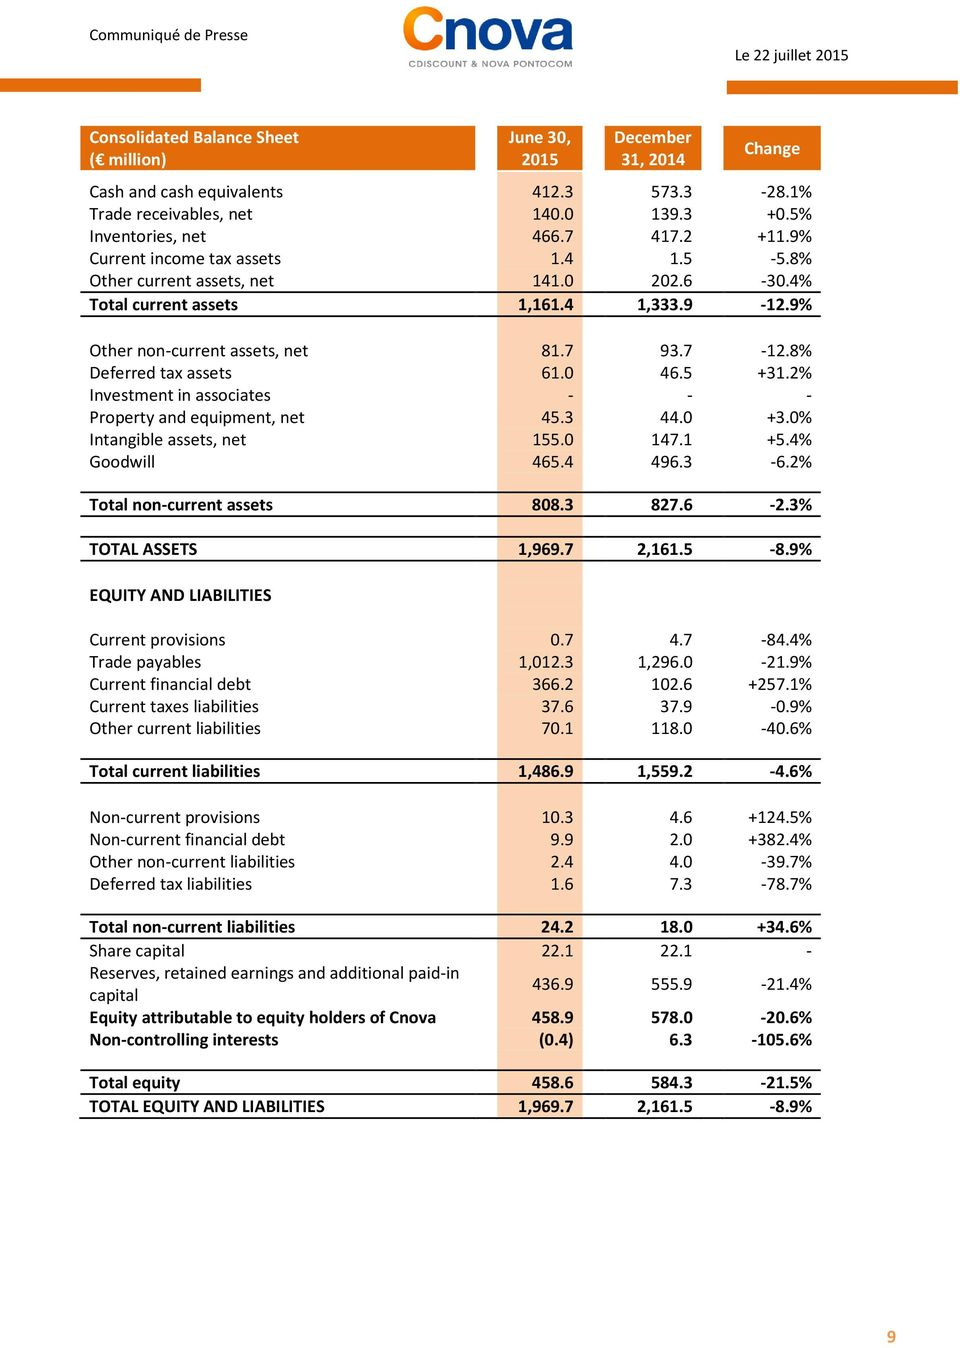 8% Deferred tax assets 61.0 46.5 +31.2% Investment in assciates - - - Prperty and equipment, net 45.3 44.0 +3.0% Intangible assets, net 155.0 147.1 +5.4% Gdwill 465.4 496.3-6.